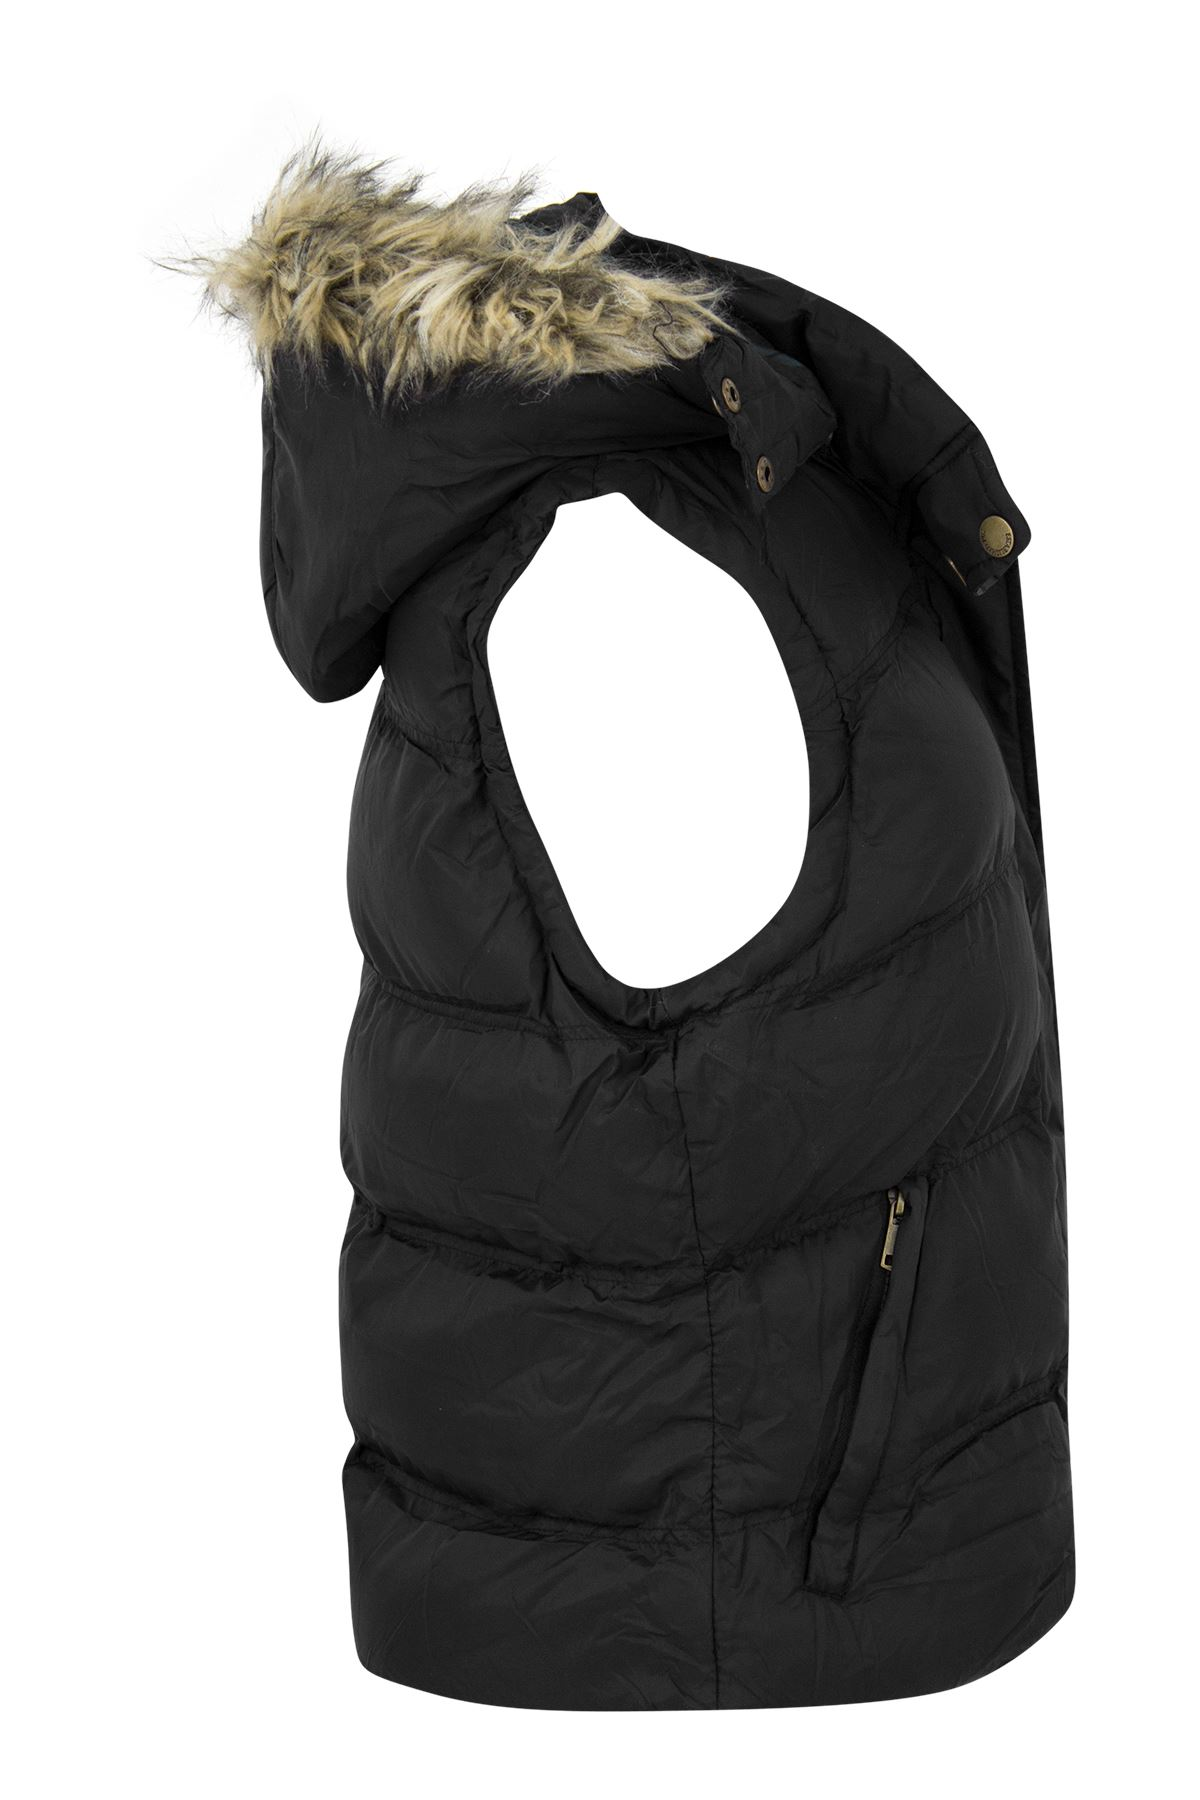 New-Womens-Padded-Sleeveless-Gilet-Faux-Fur-Hooded-Puffer-Body-Warmer-Jacket thumbnail 3